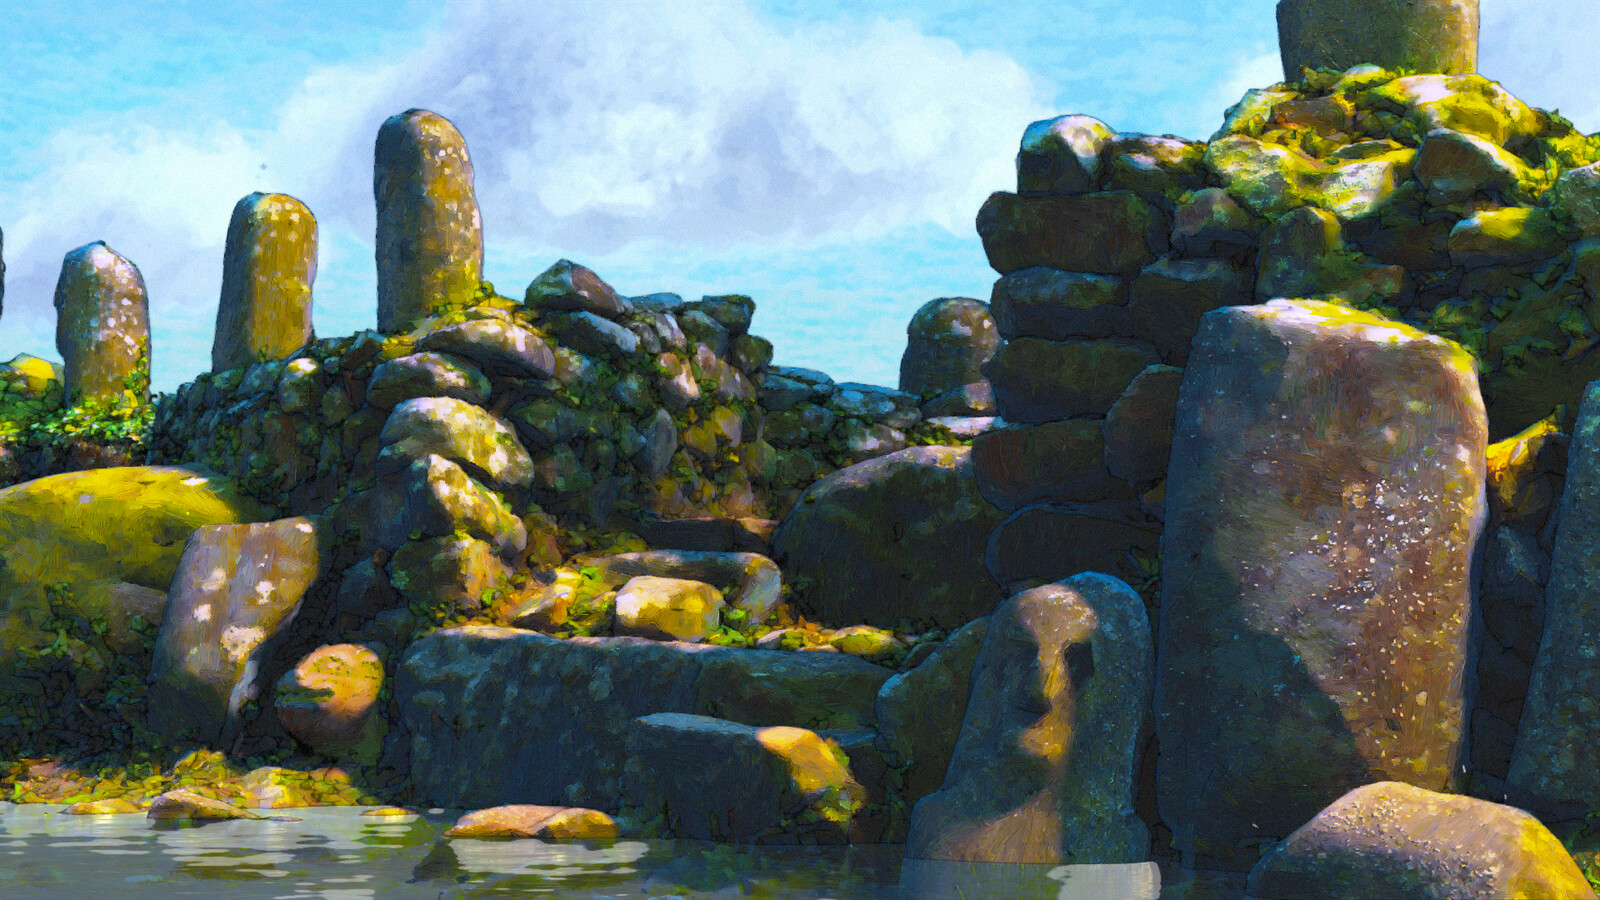 Stone Ruins I - (Stylized 3D Environment Rendering - 2021)